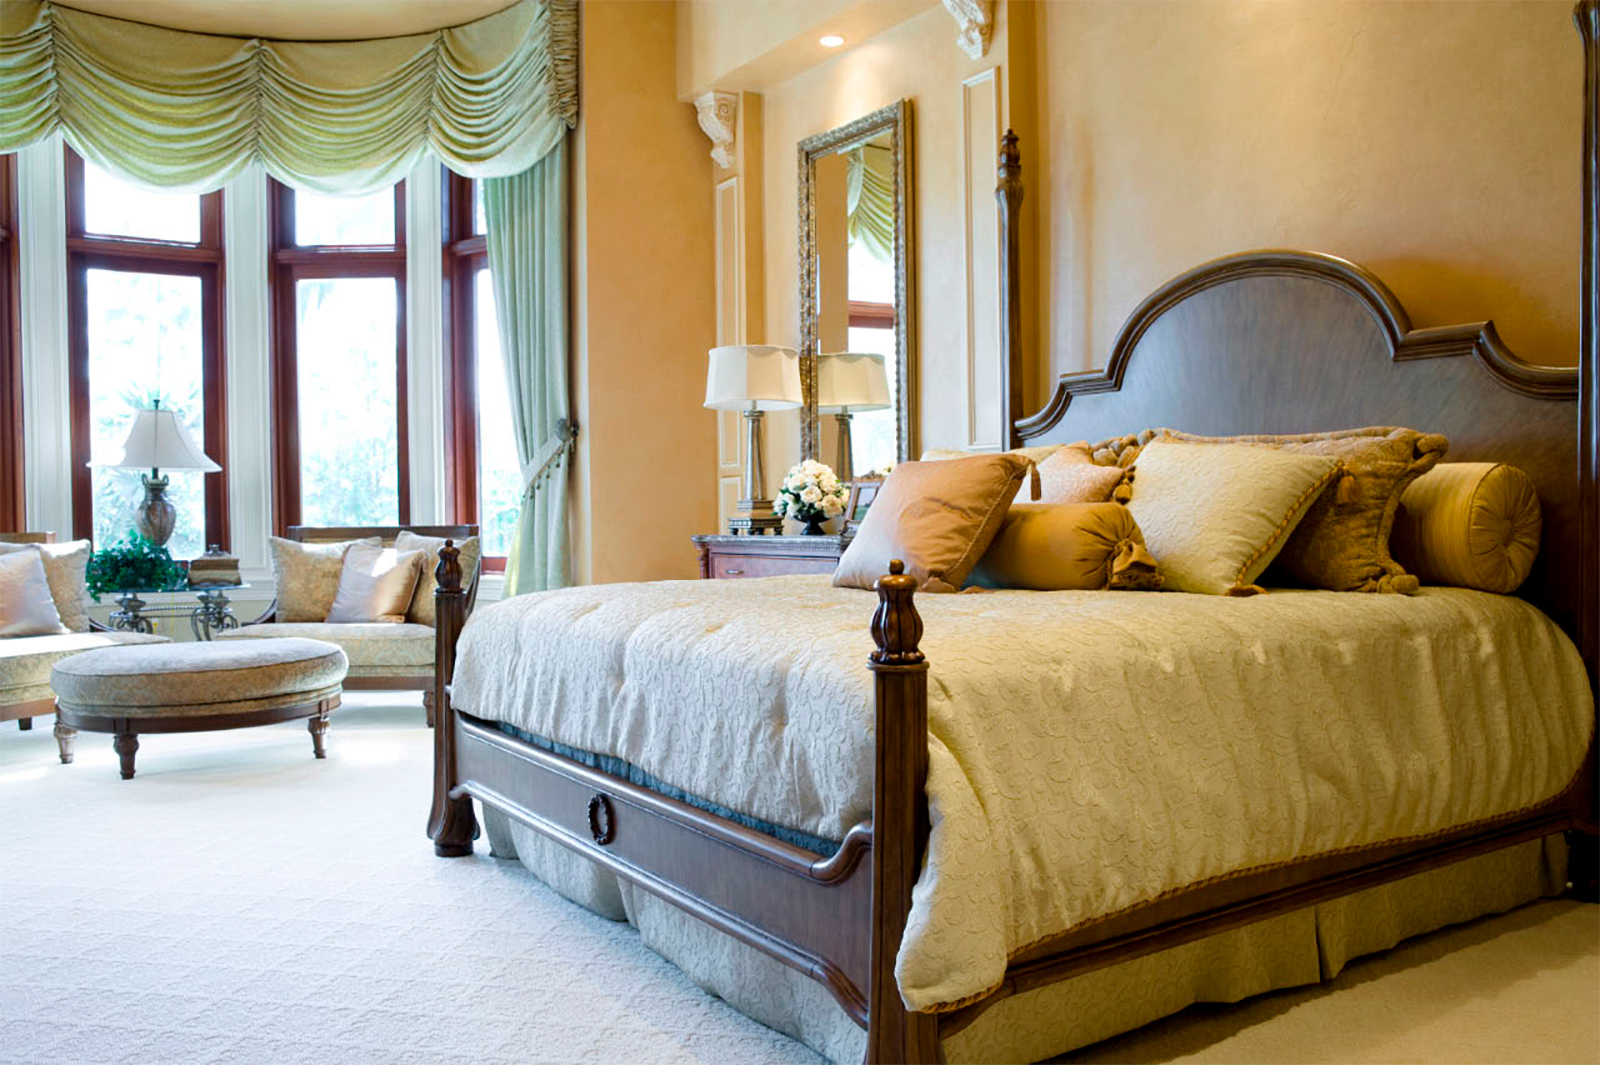 Bad Feng Shui Mirror Placement Feng Shui Bed Positioning Ideas For Good Sleep And Happiness